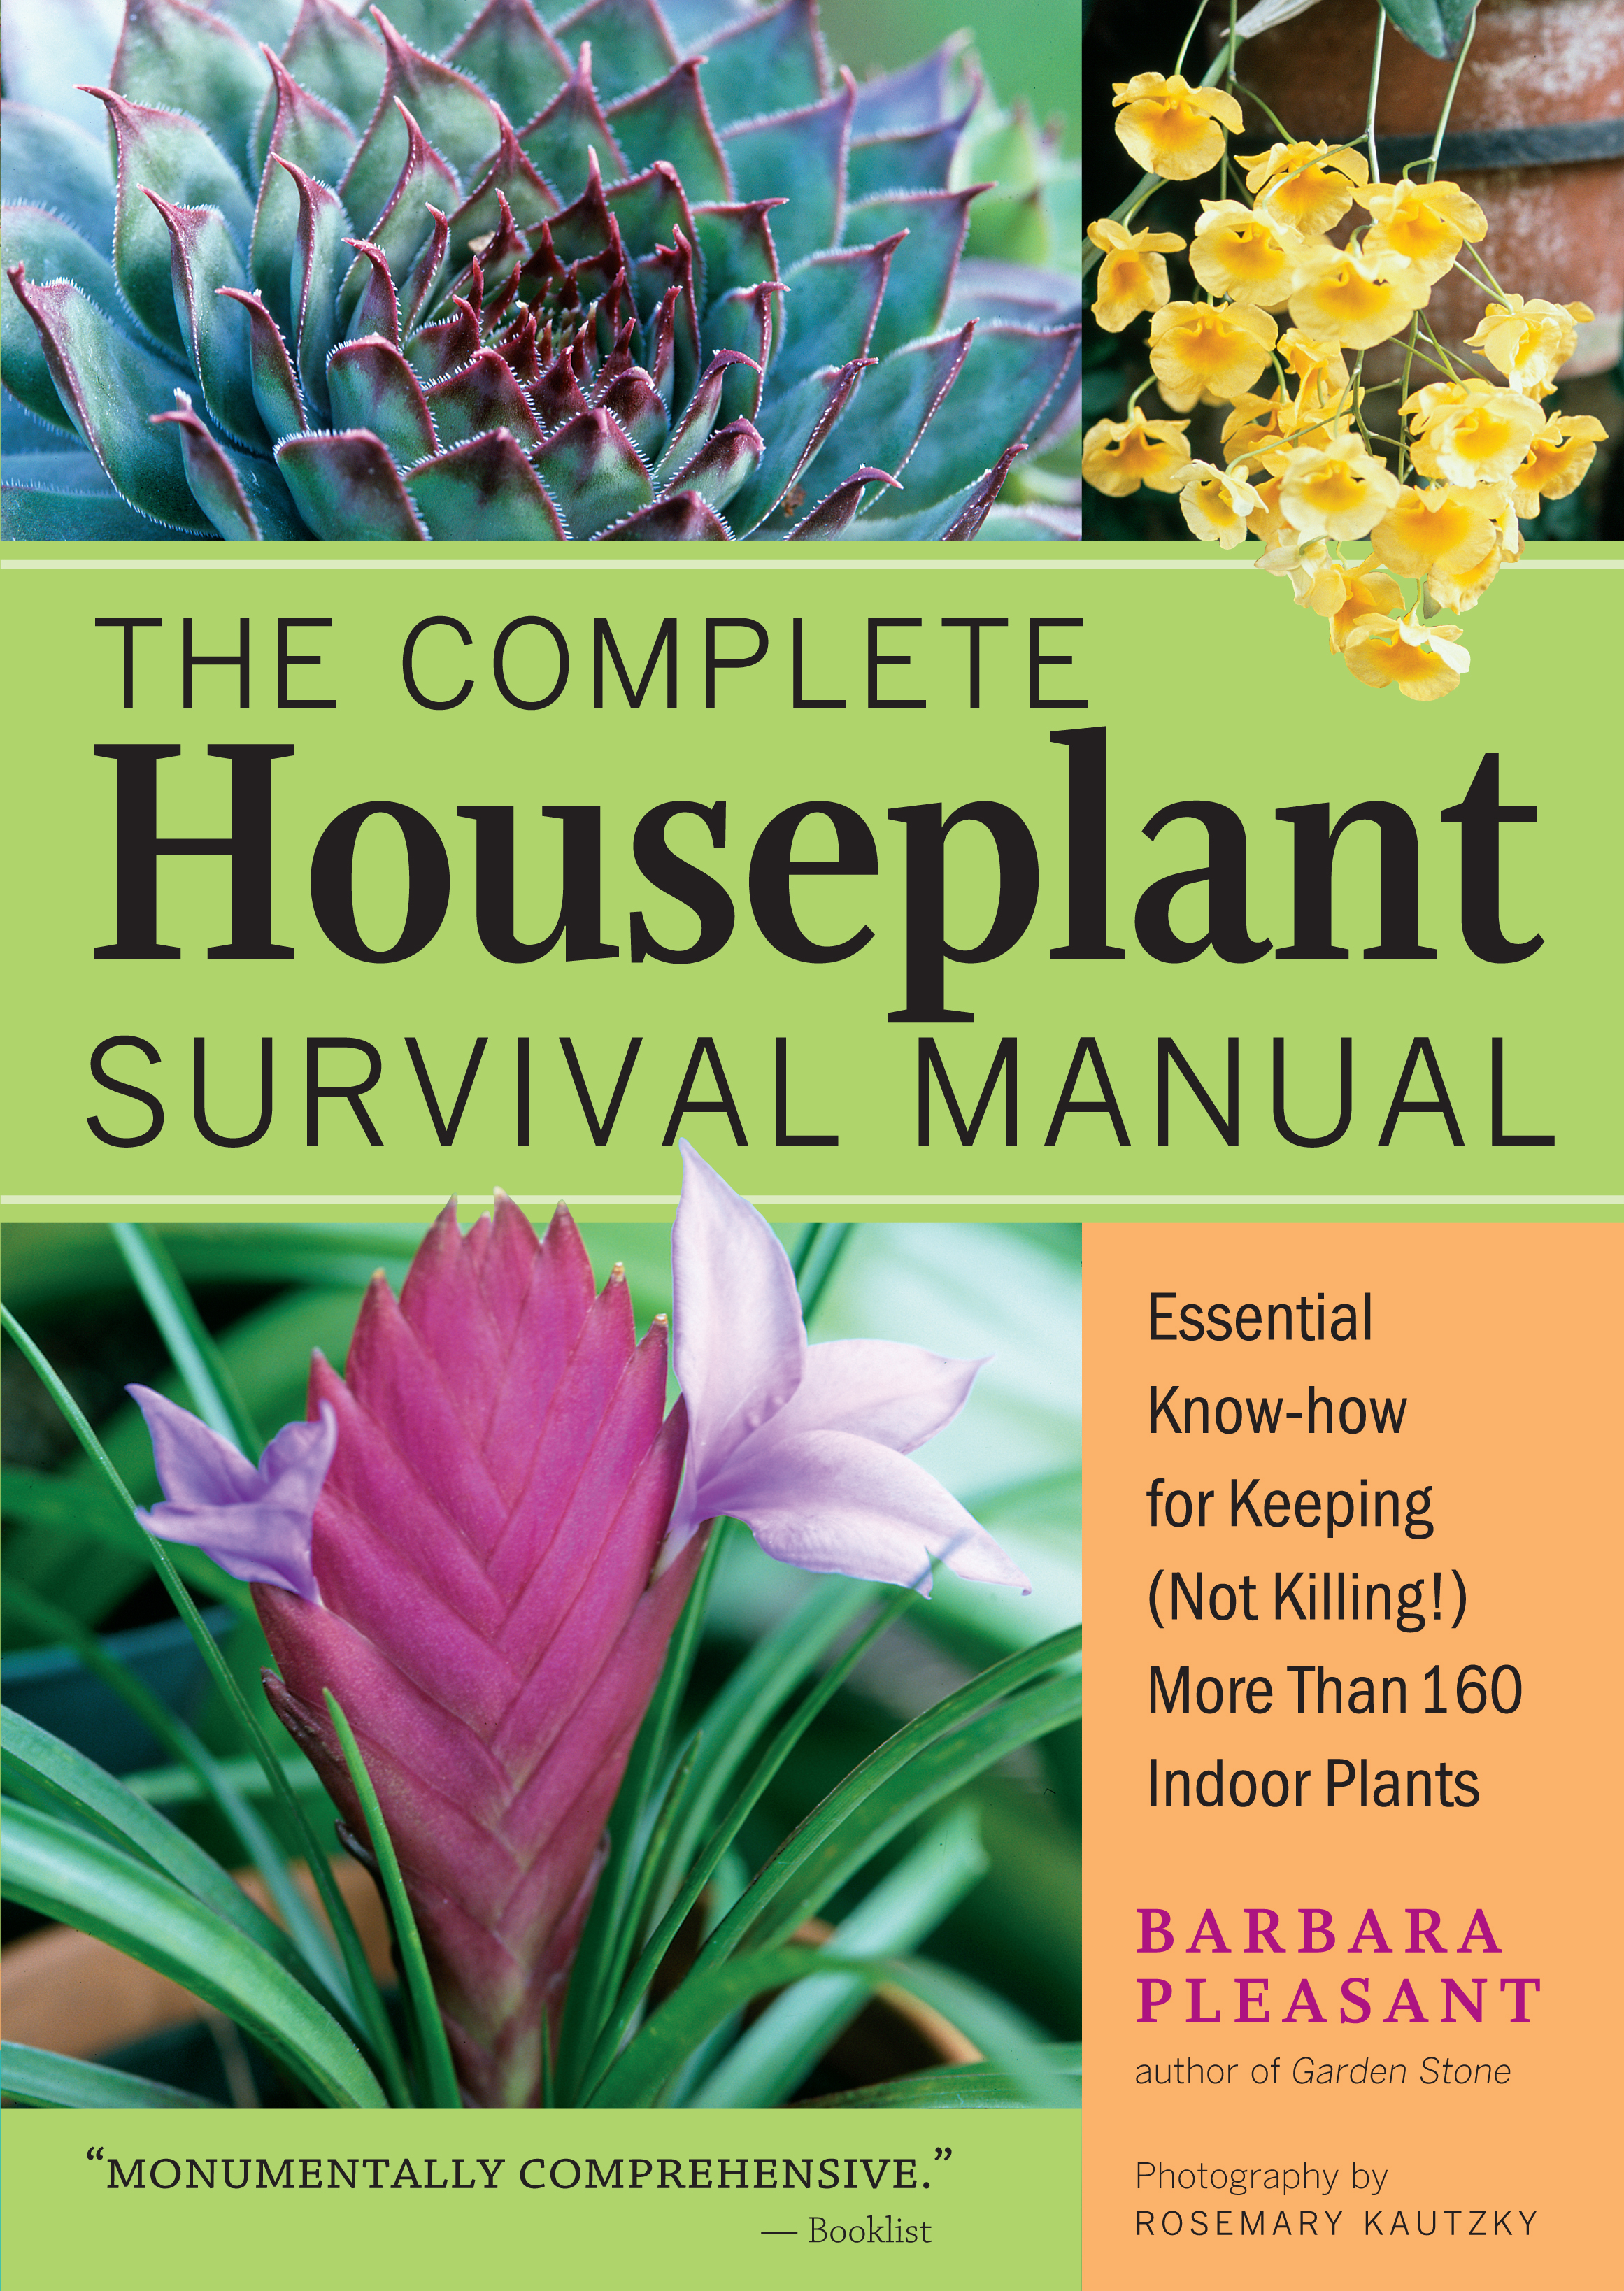 The Complete Houseplant Survival Manual Essential Gardening Know-how for Keeping (Not Killing!) More Than 160 Indoor Plants